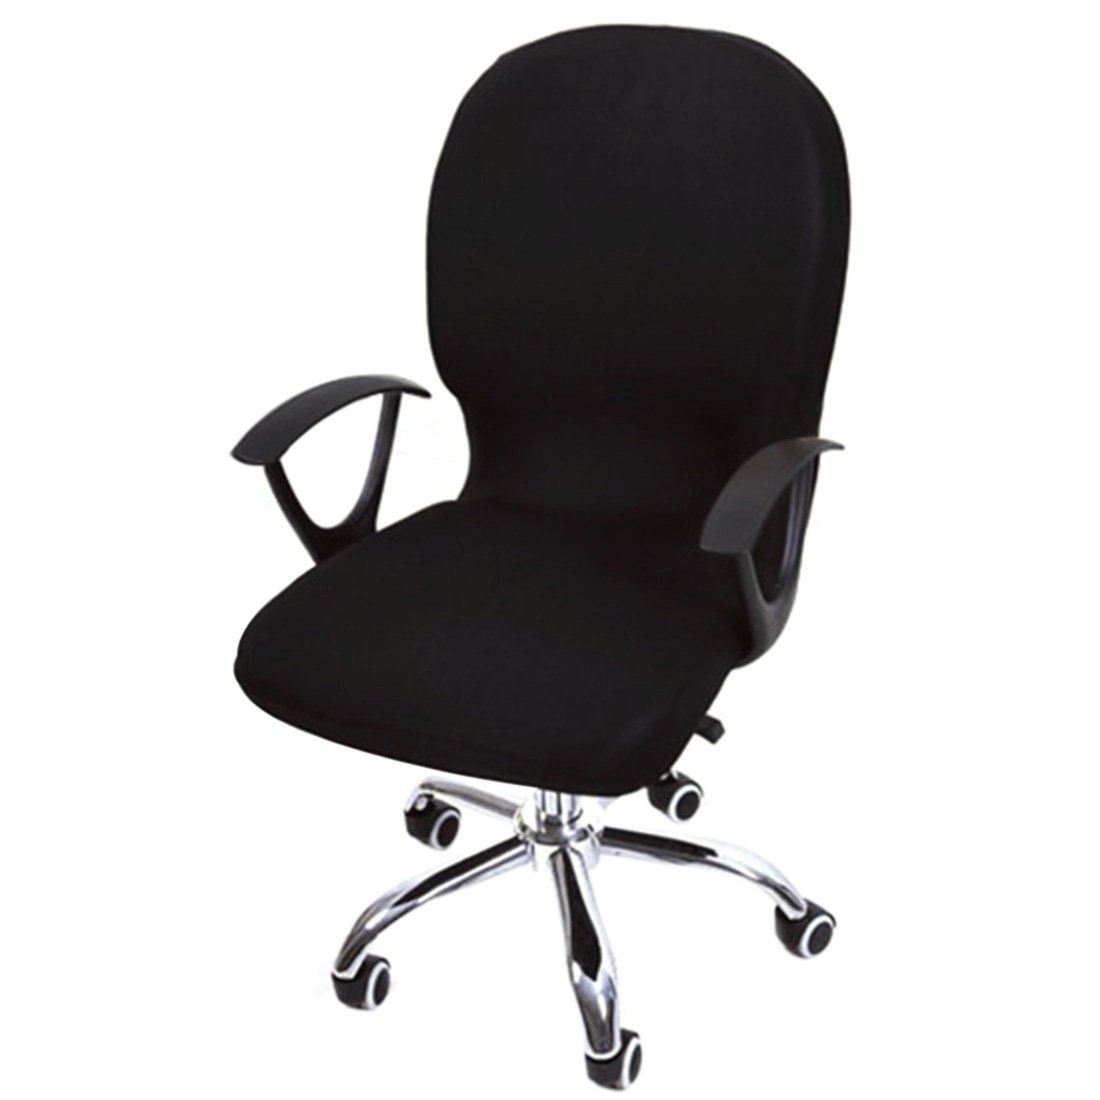 Freahap Stretchable Swivel Chair Cover Removable Computer Office Chair Cover Black